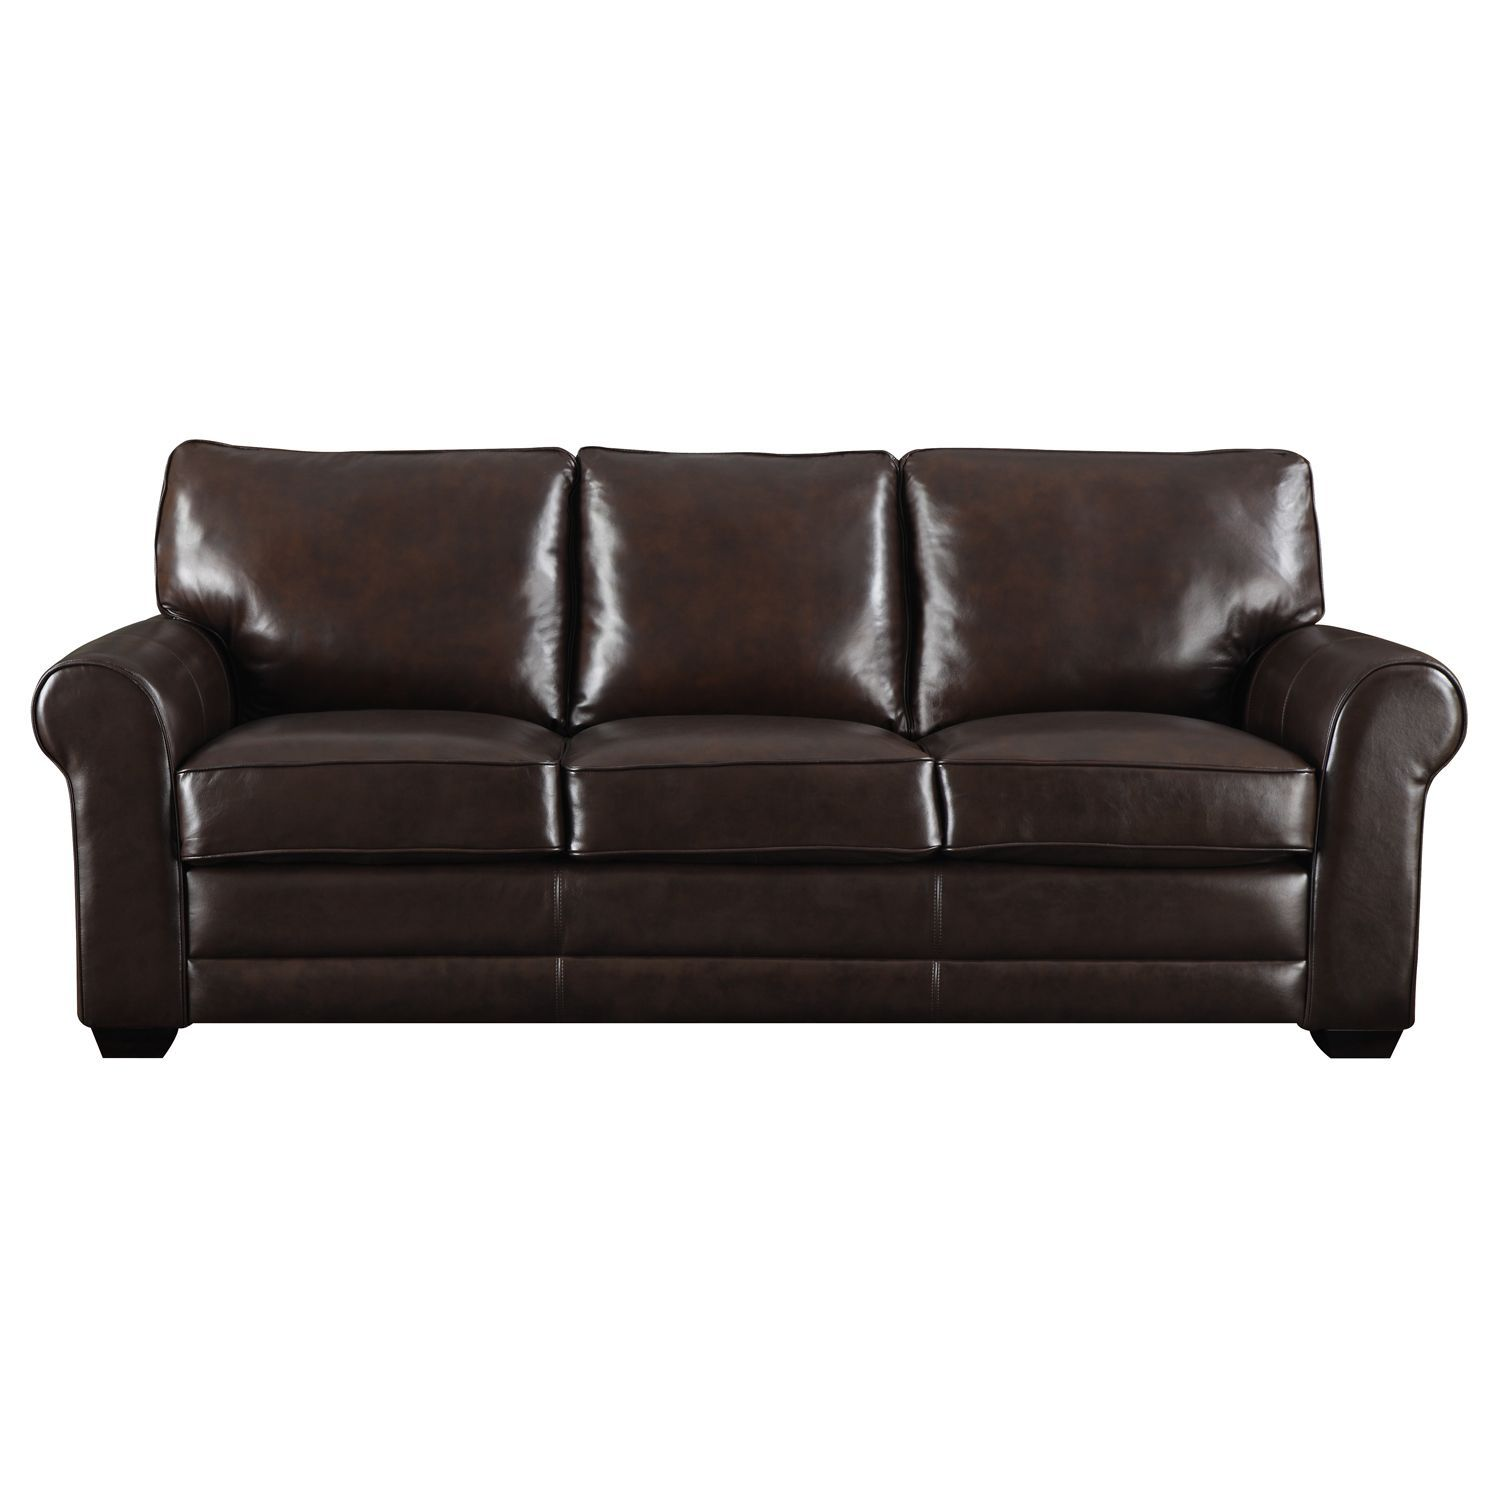 bailey leather sofa bed l seater dimensions stationary sam 39s club project new